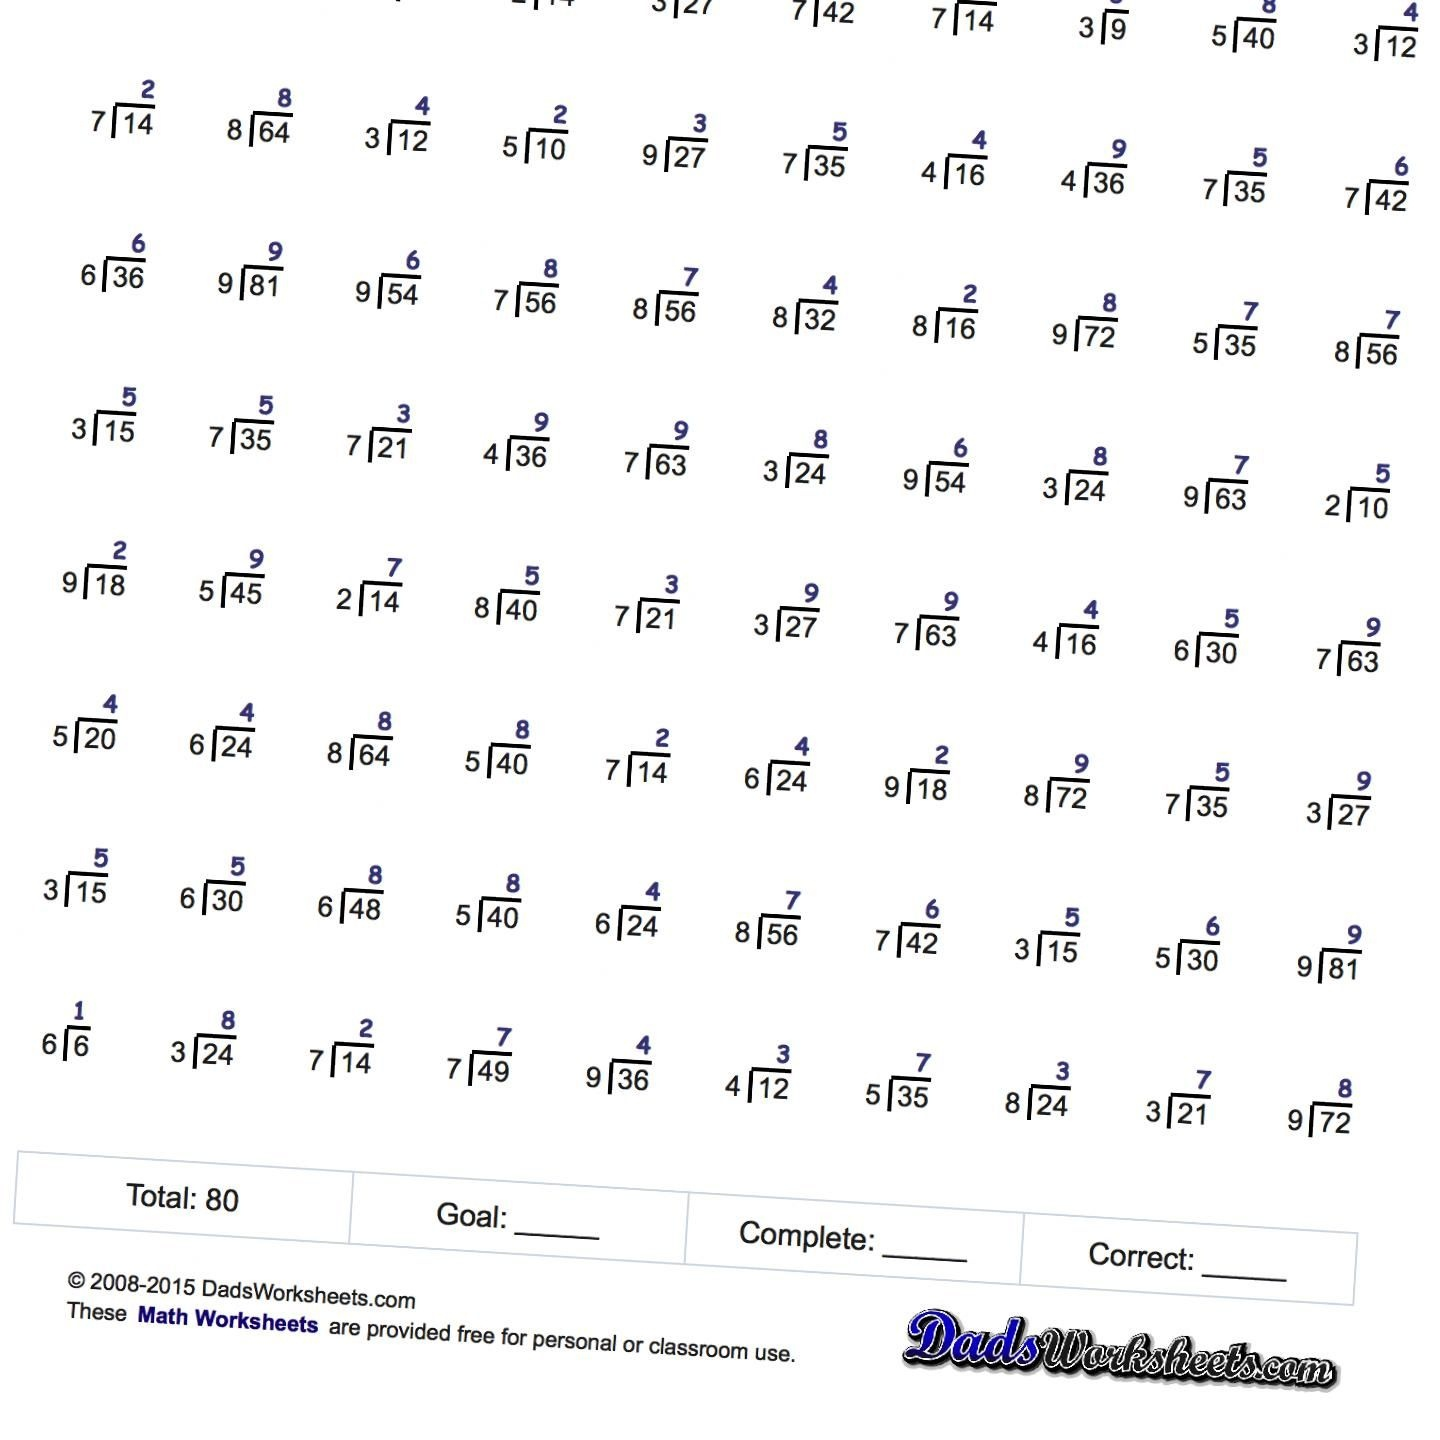 Division Worksheets! Just Whole Facts - Two Minute Tests | Education - Free Printable Division Worksheets